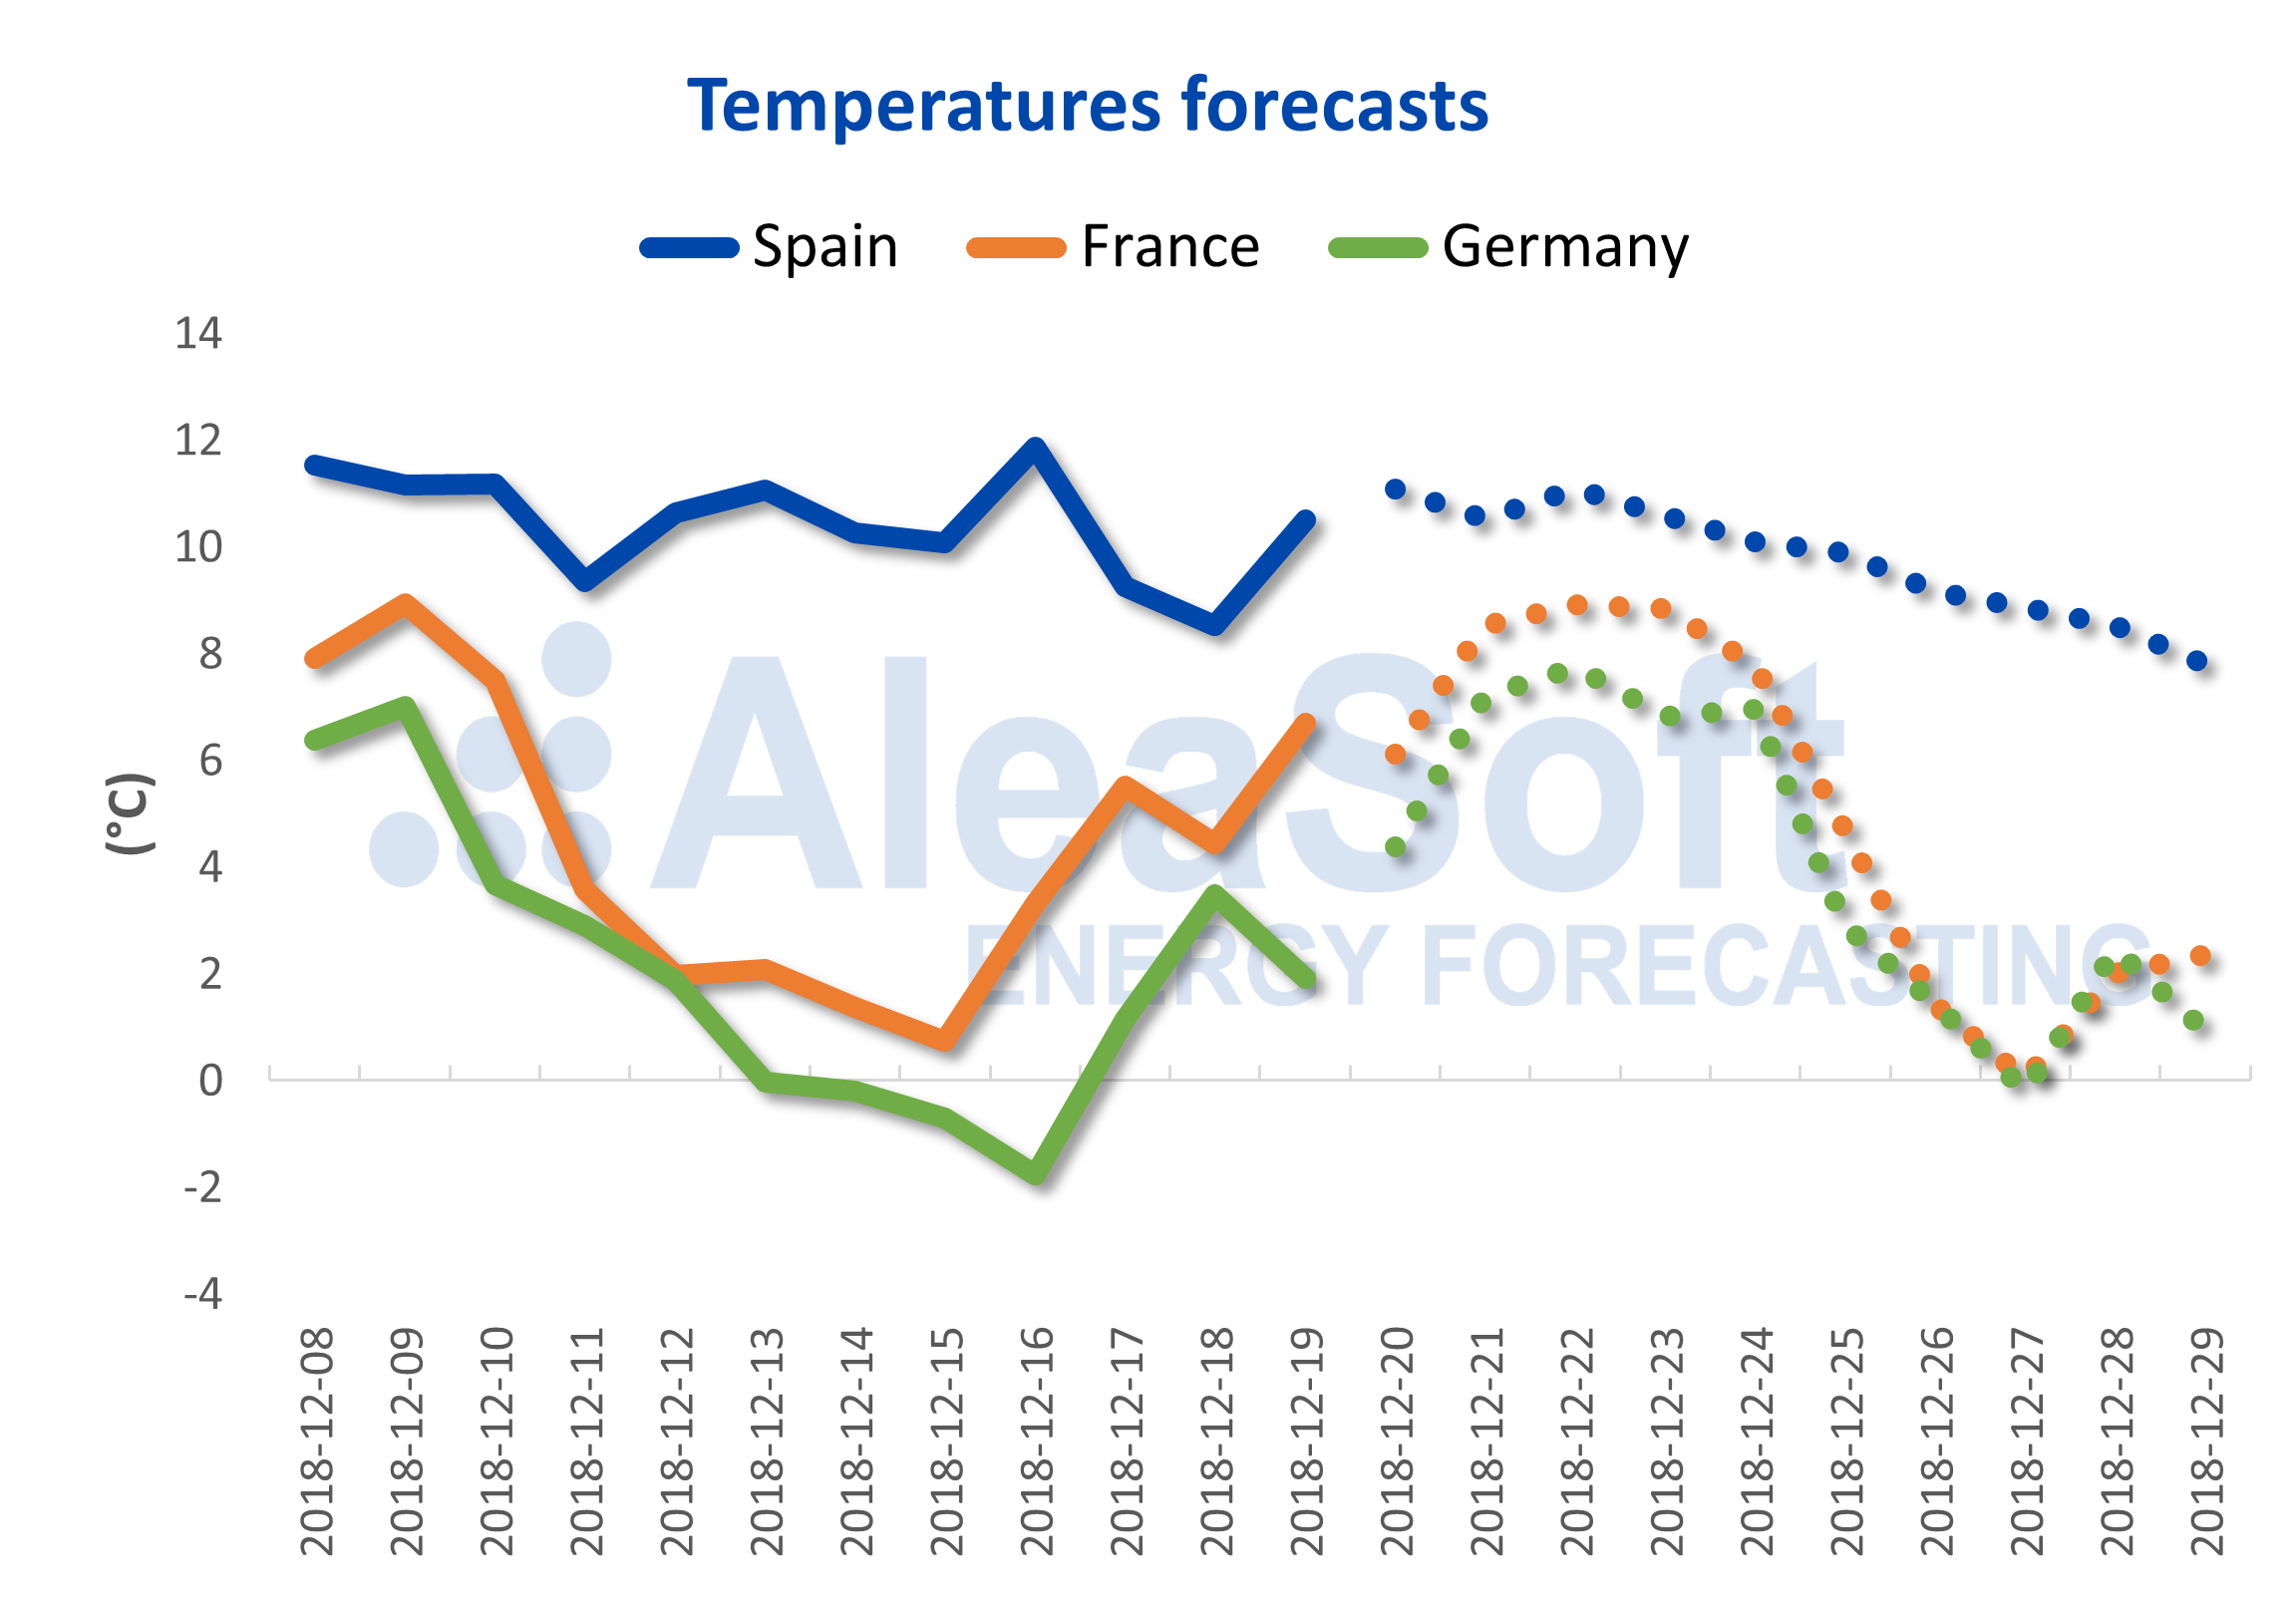 AleaSoft - Temperature forecast for Spain, France and Germany